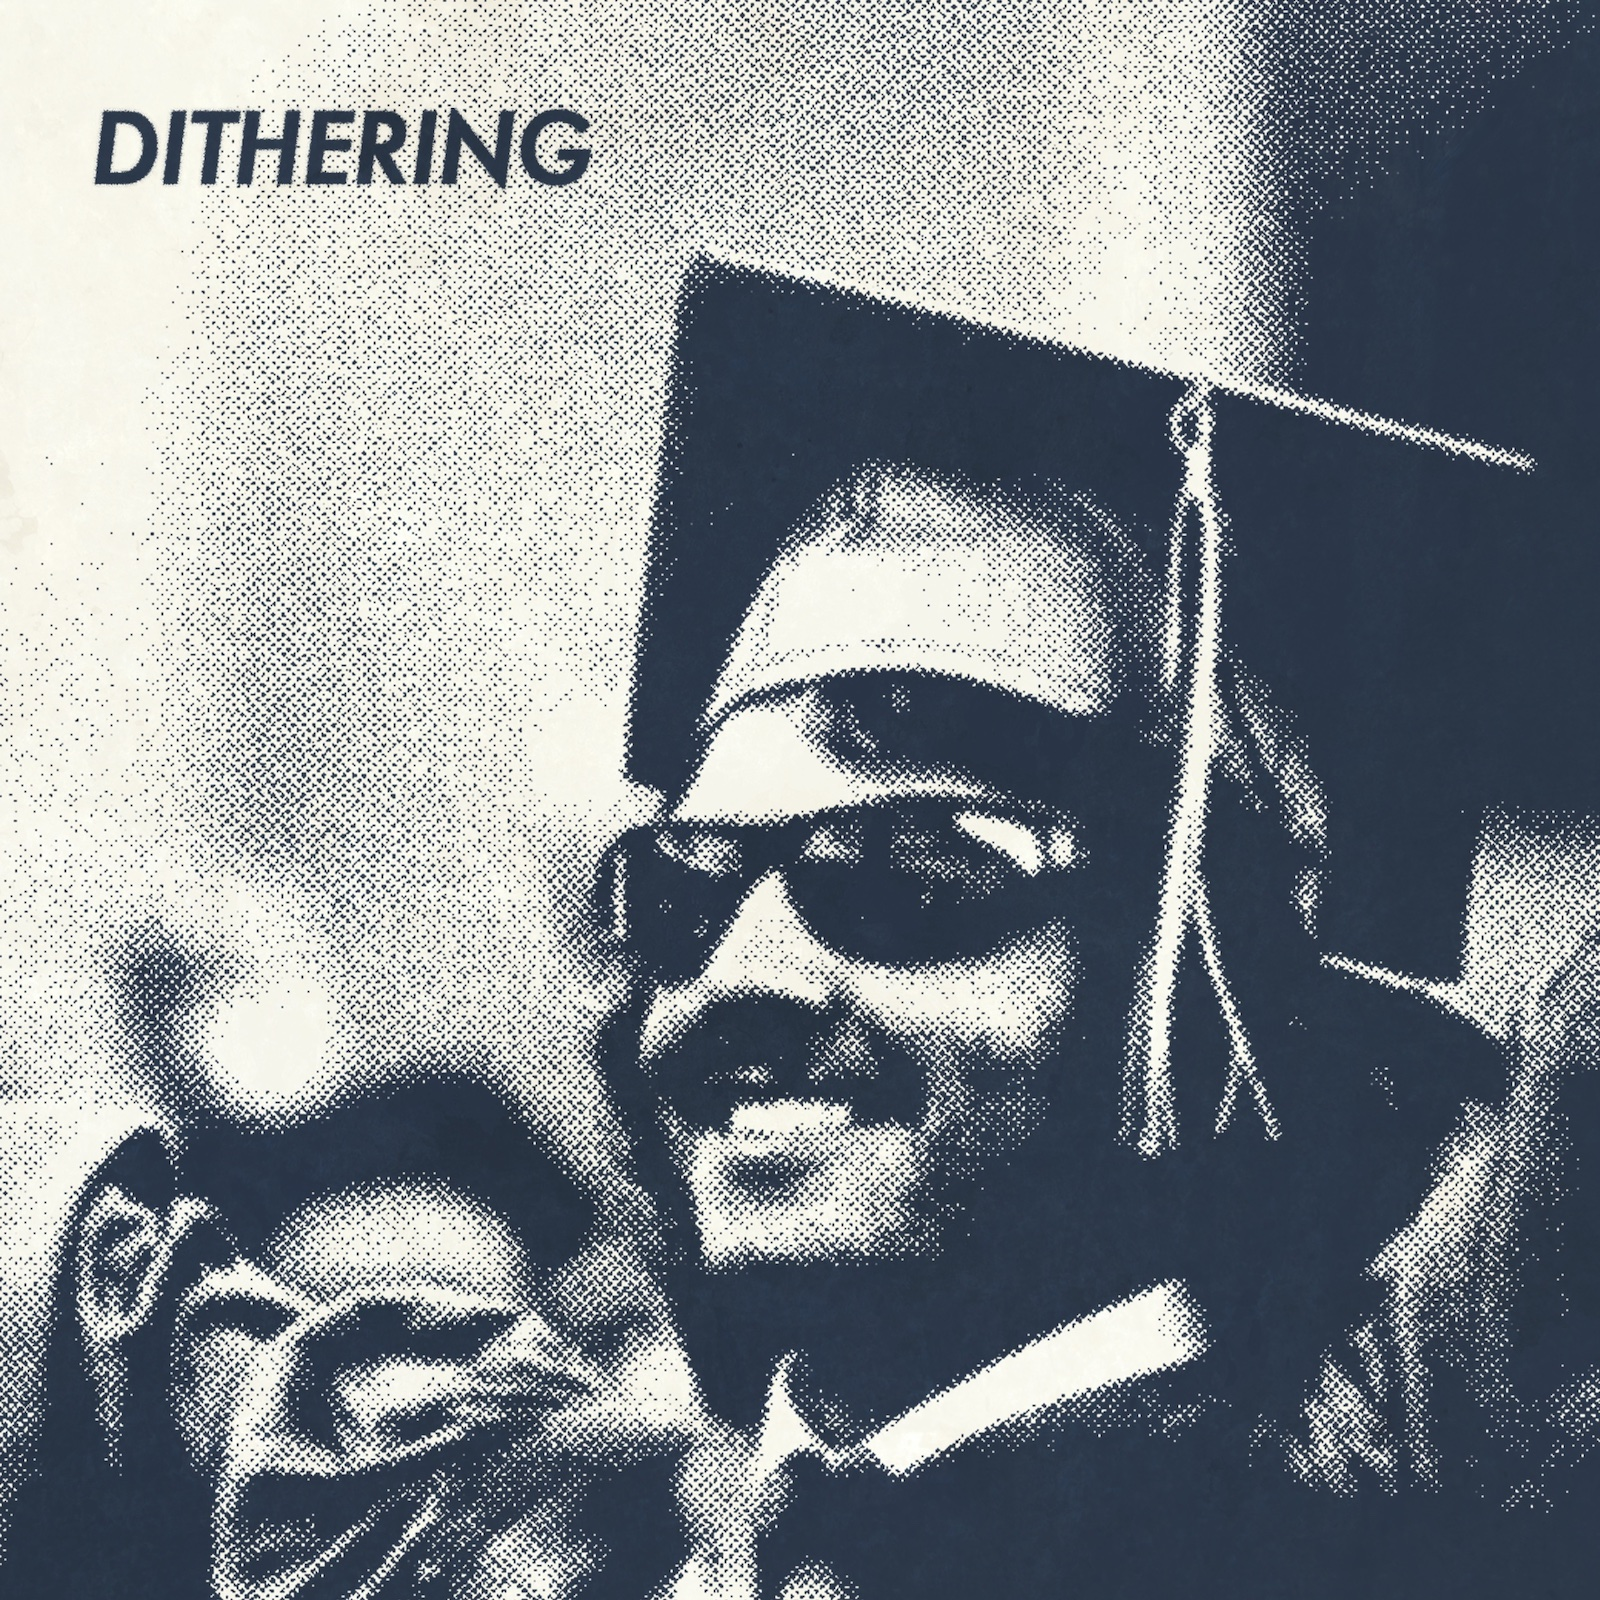 June 2021 cover art for Dithering, featuring a young man in cap and gown celebrating graduation.